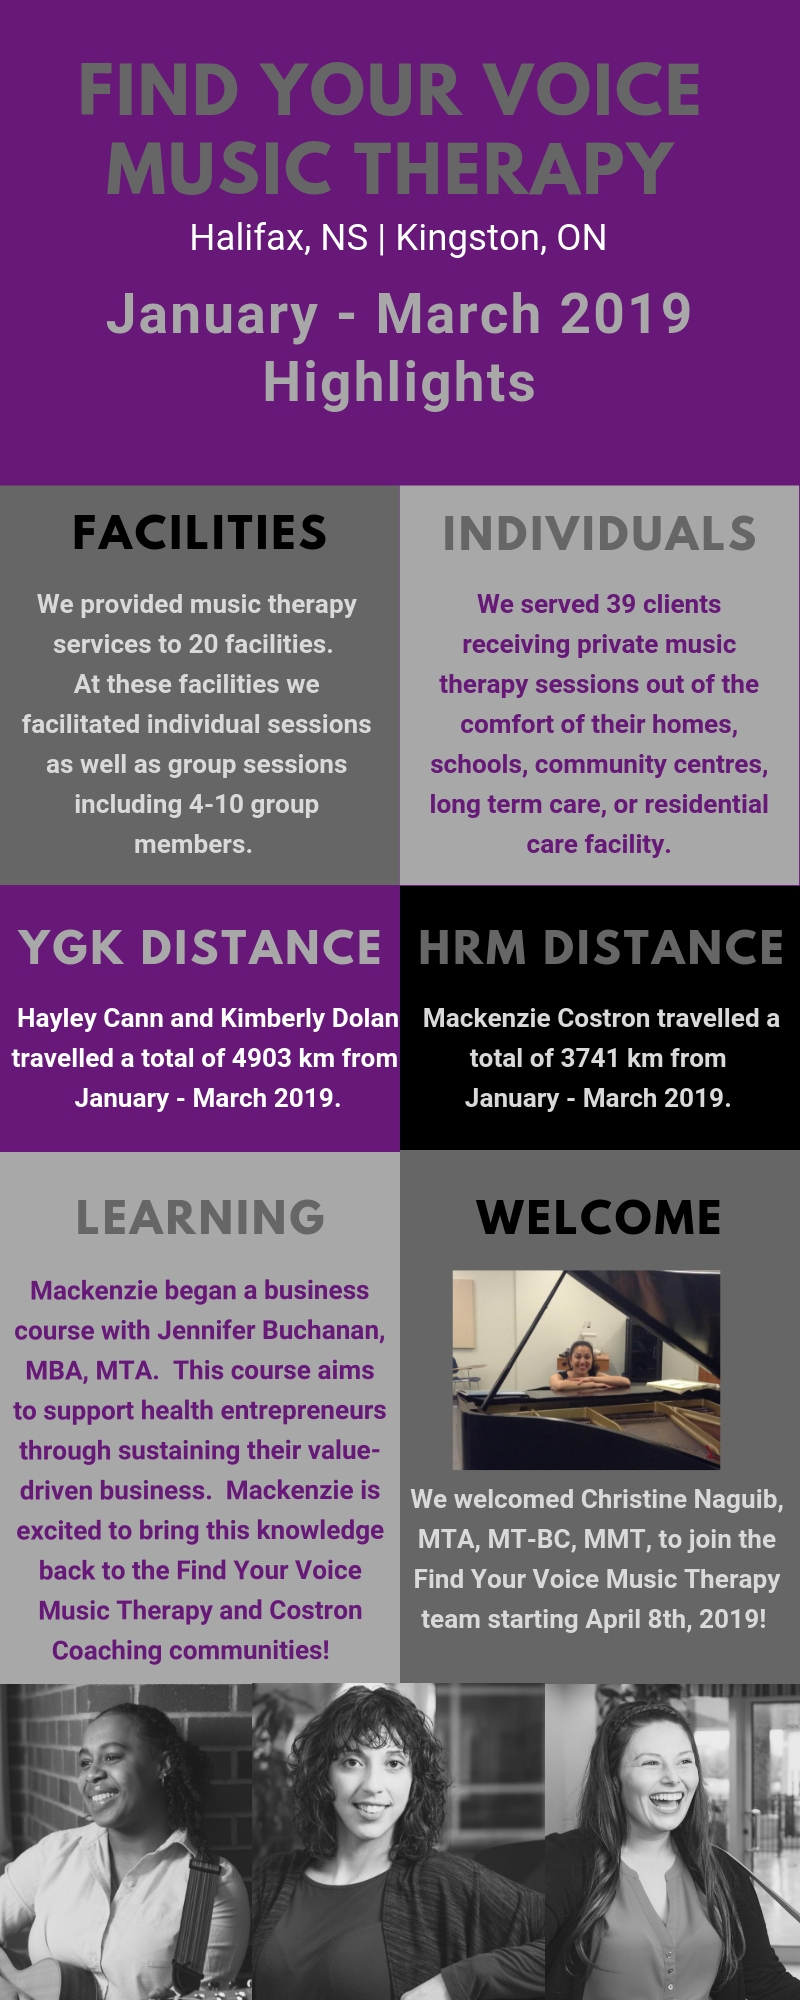 January - March 2019 Highlights Find Your Voice Music Therapy. Kingston Ontario Halifax Nova Scotia